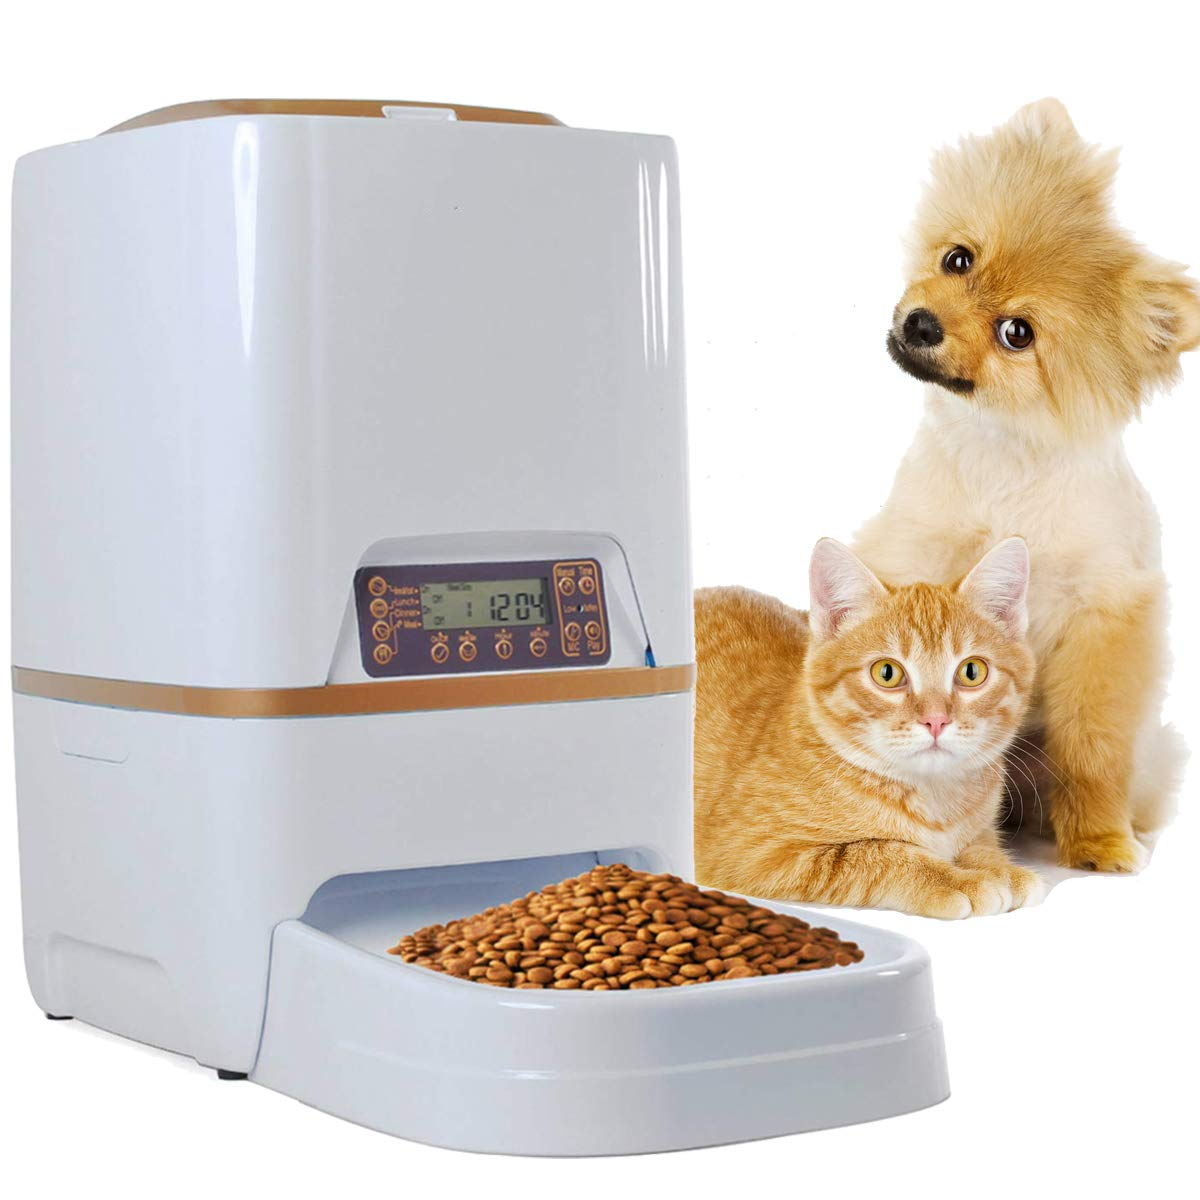 Sailnovo 6L Automatic Pet Feeder Food Dispenser for Dogs, Cats & Small Animals - Features Distribution Alarms, Portion Control & Voice Recording - Timer Programmable Up to 4 Meals a Day by Sailnovo